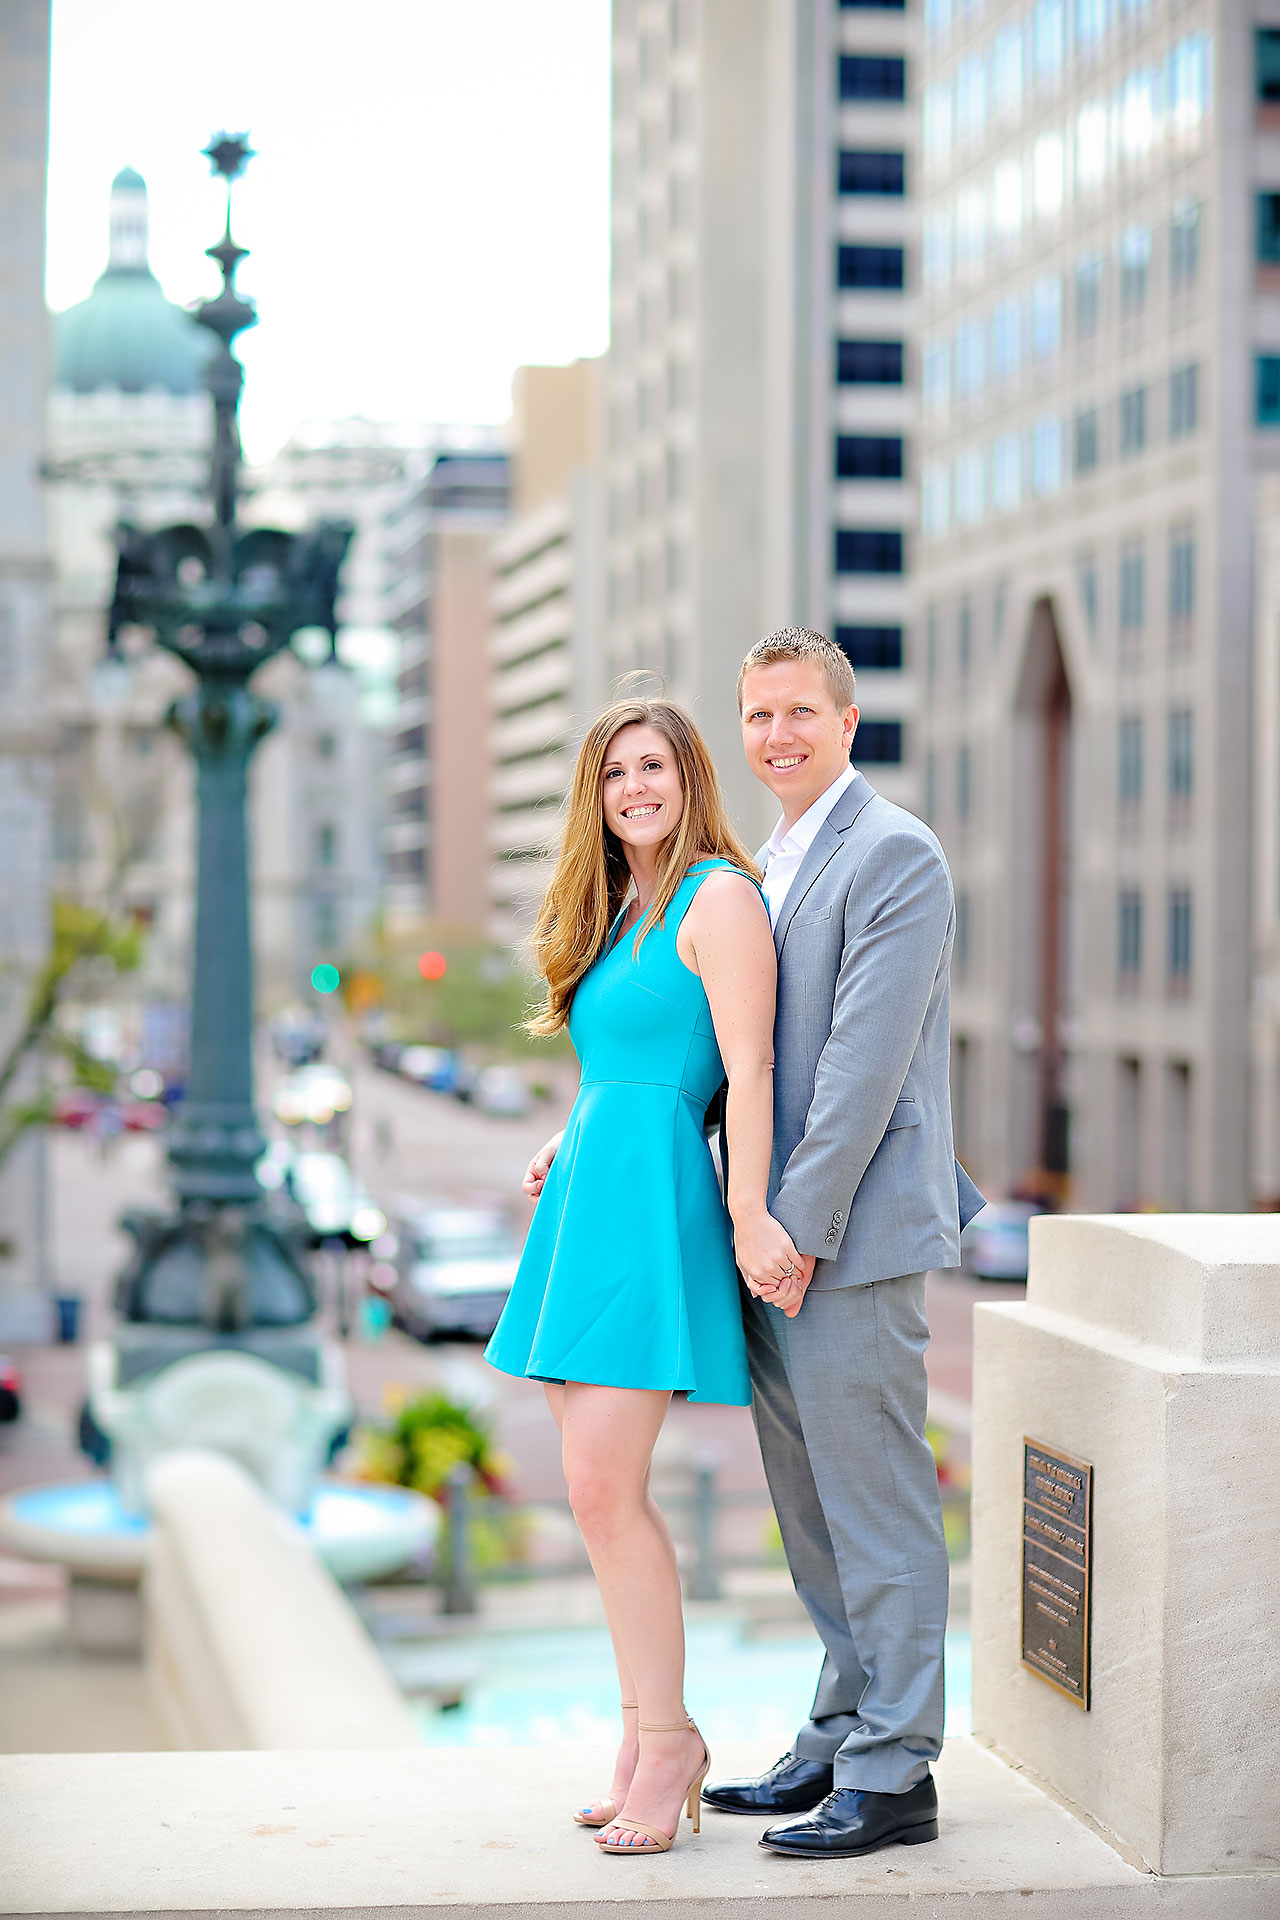 Chelsea Jeff Downtown Indy Engagement Session 106